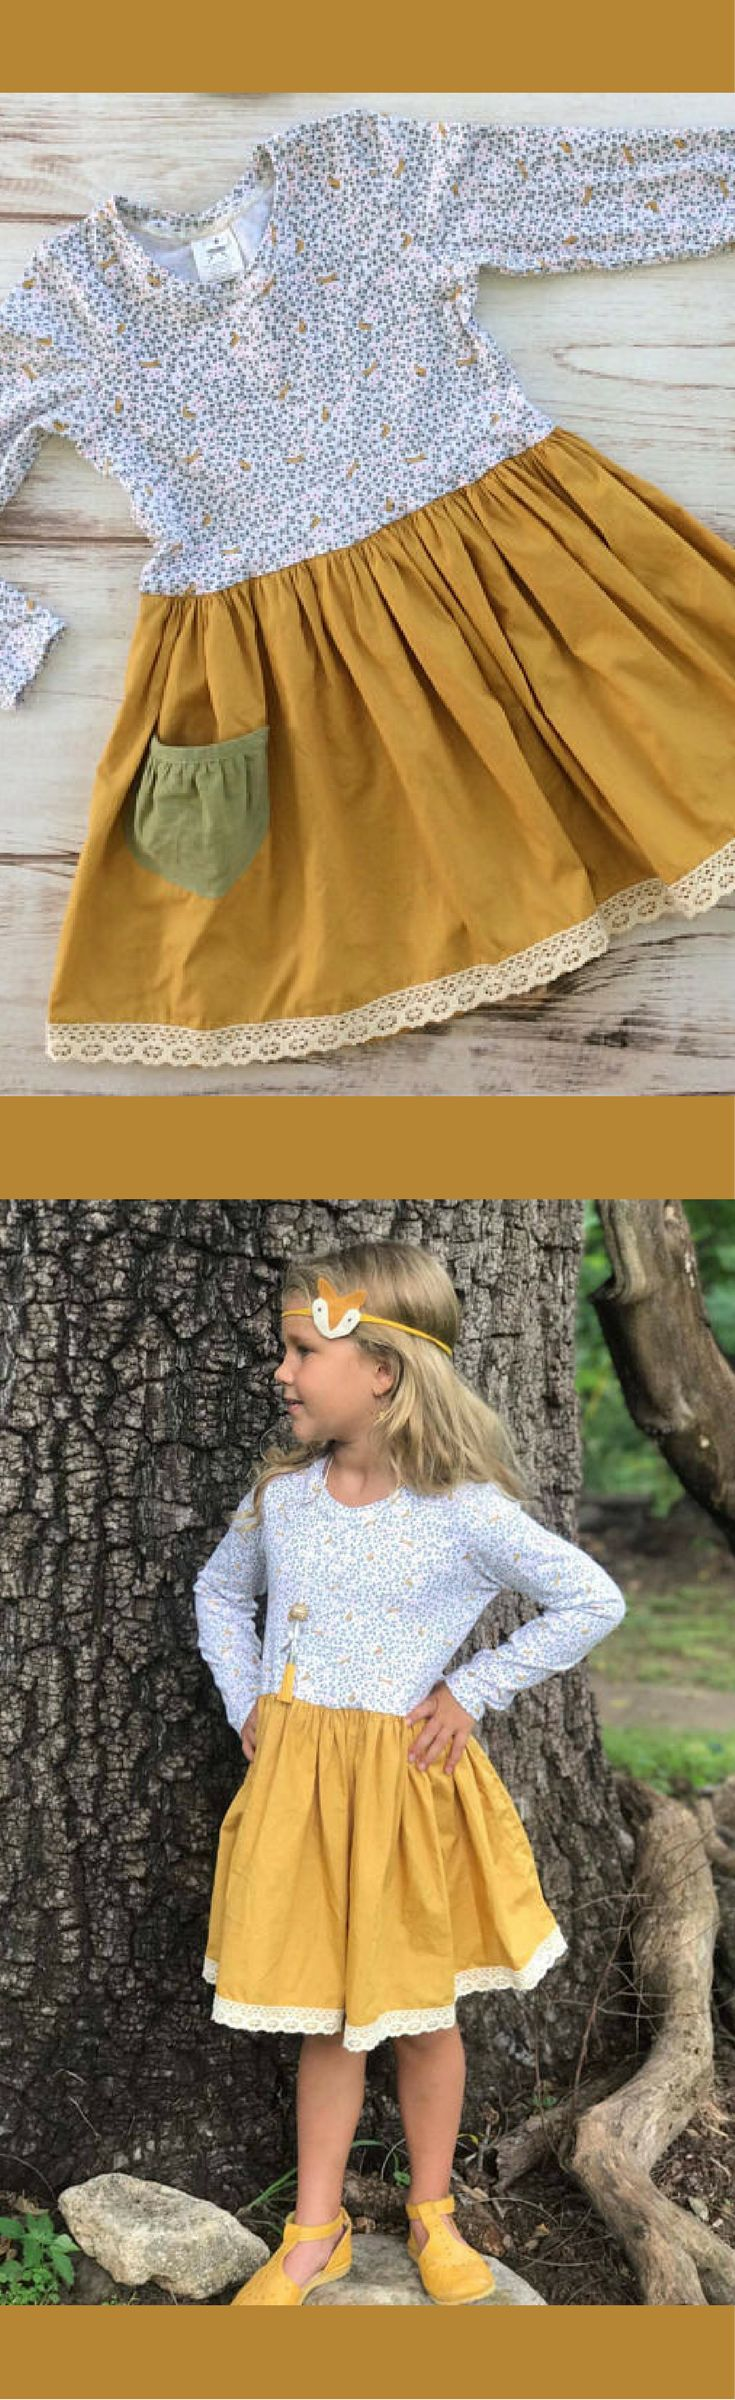 Girls twirl dress - girls dress for fall - girls dress with foxes - toddler girls clothes for fall - girls fall dress - girls fall outfit, family picture dress, Thanksgiving dress, Thanksgiving outfit girl #ad #affiliatelink